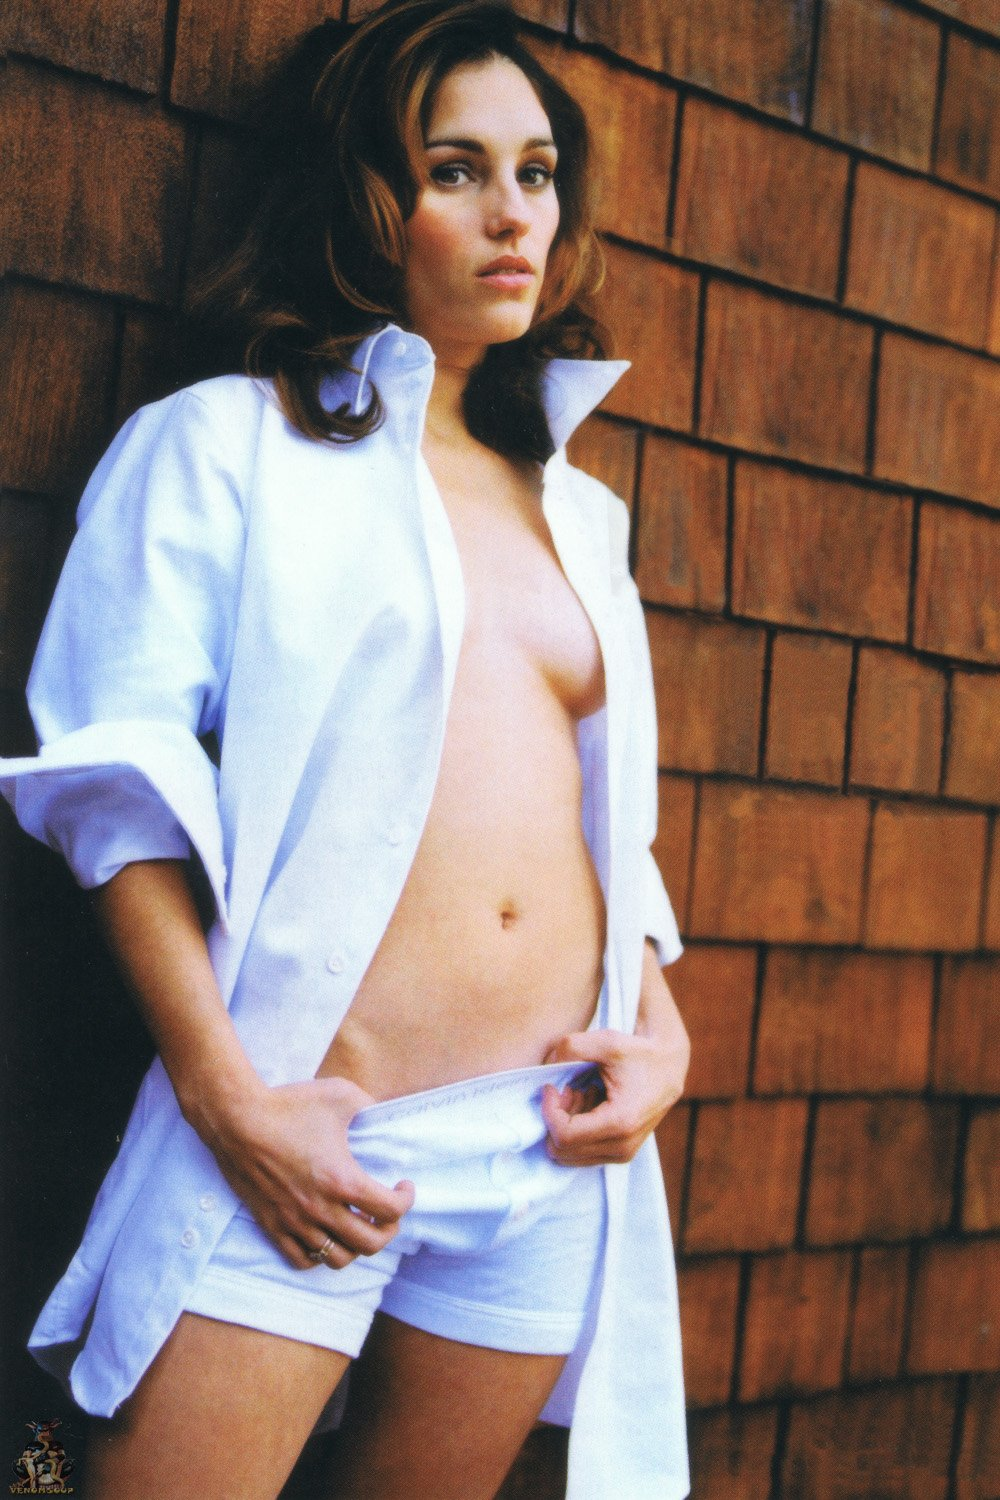 Celebrity Crush: Amy Jo Johnson (Revised)